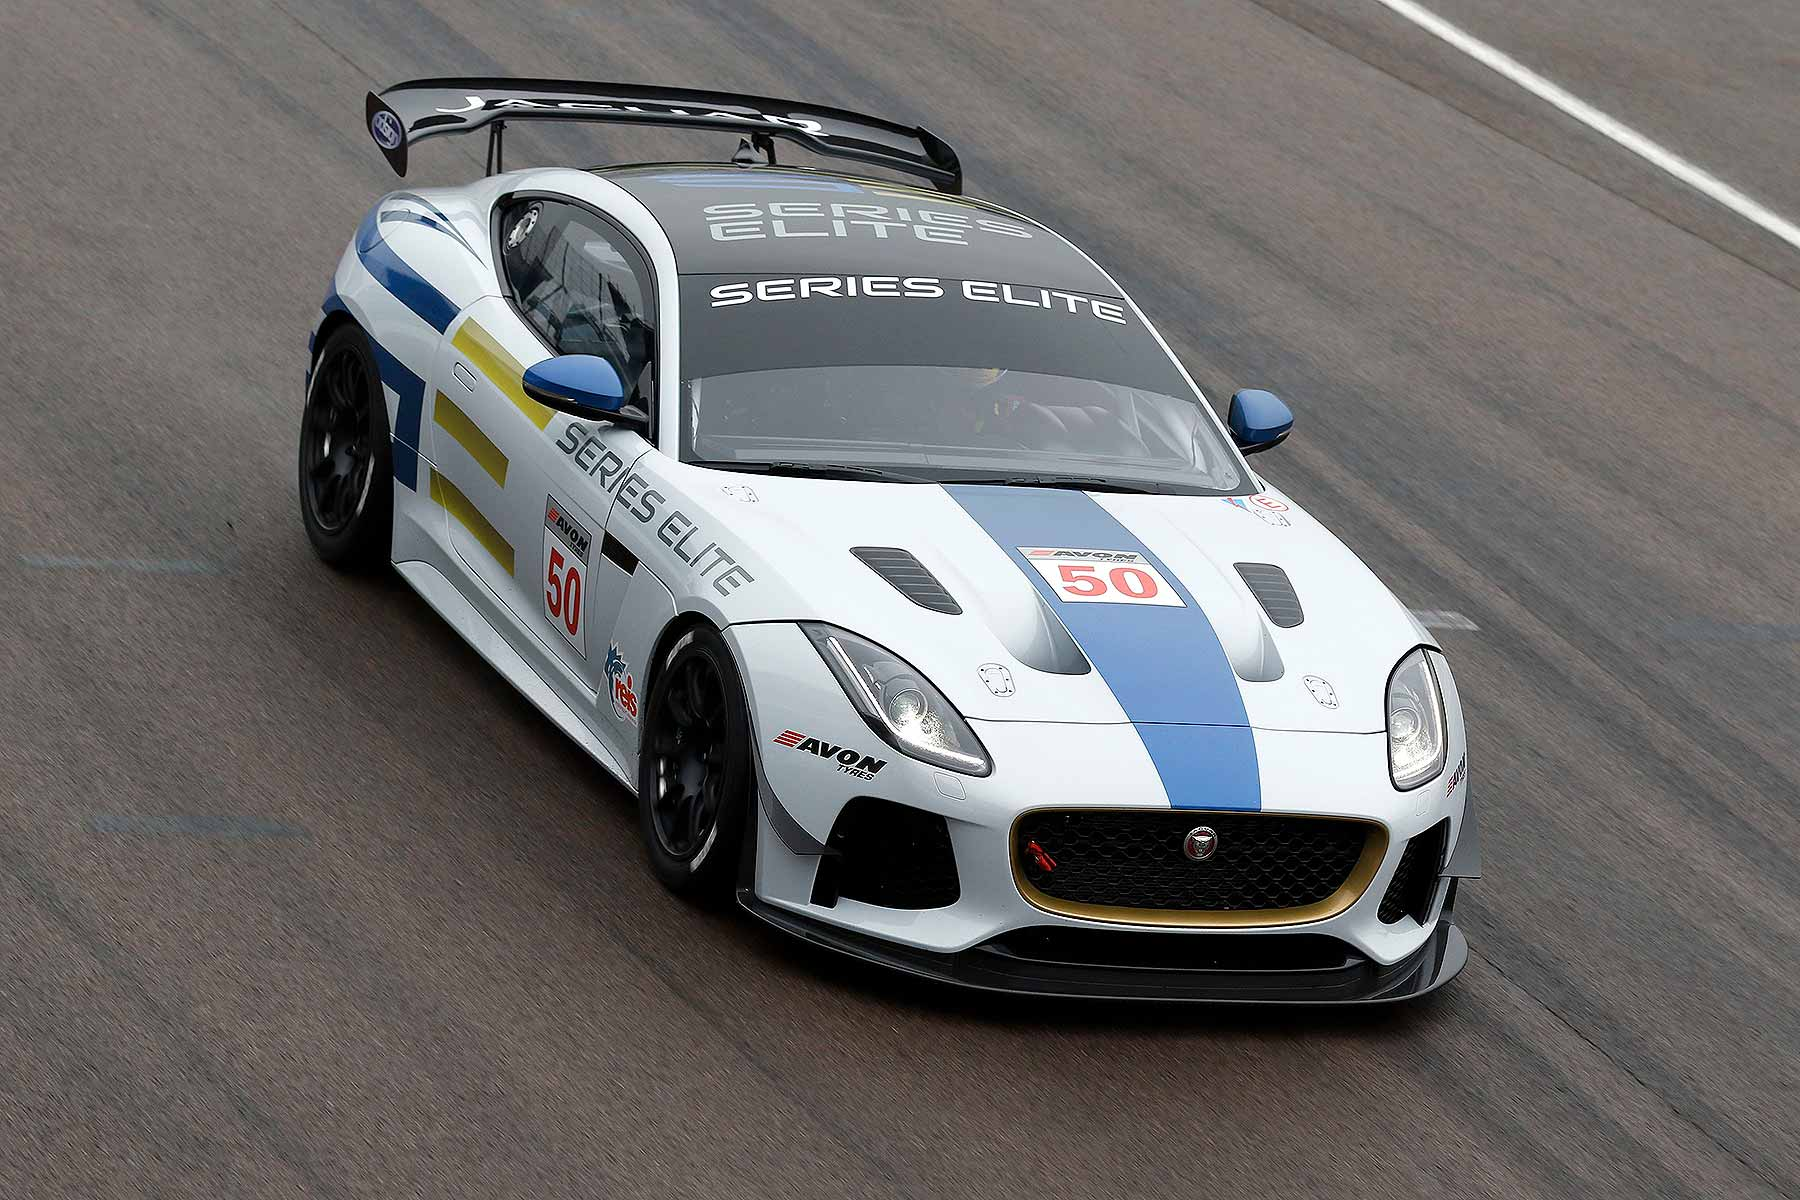 Series Elite Jaguar F Type GT4